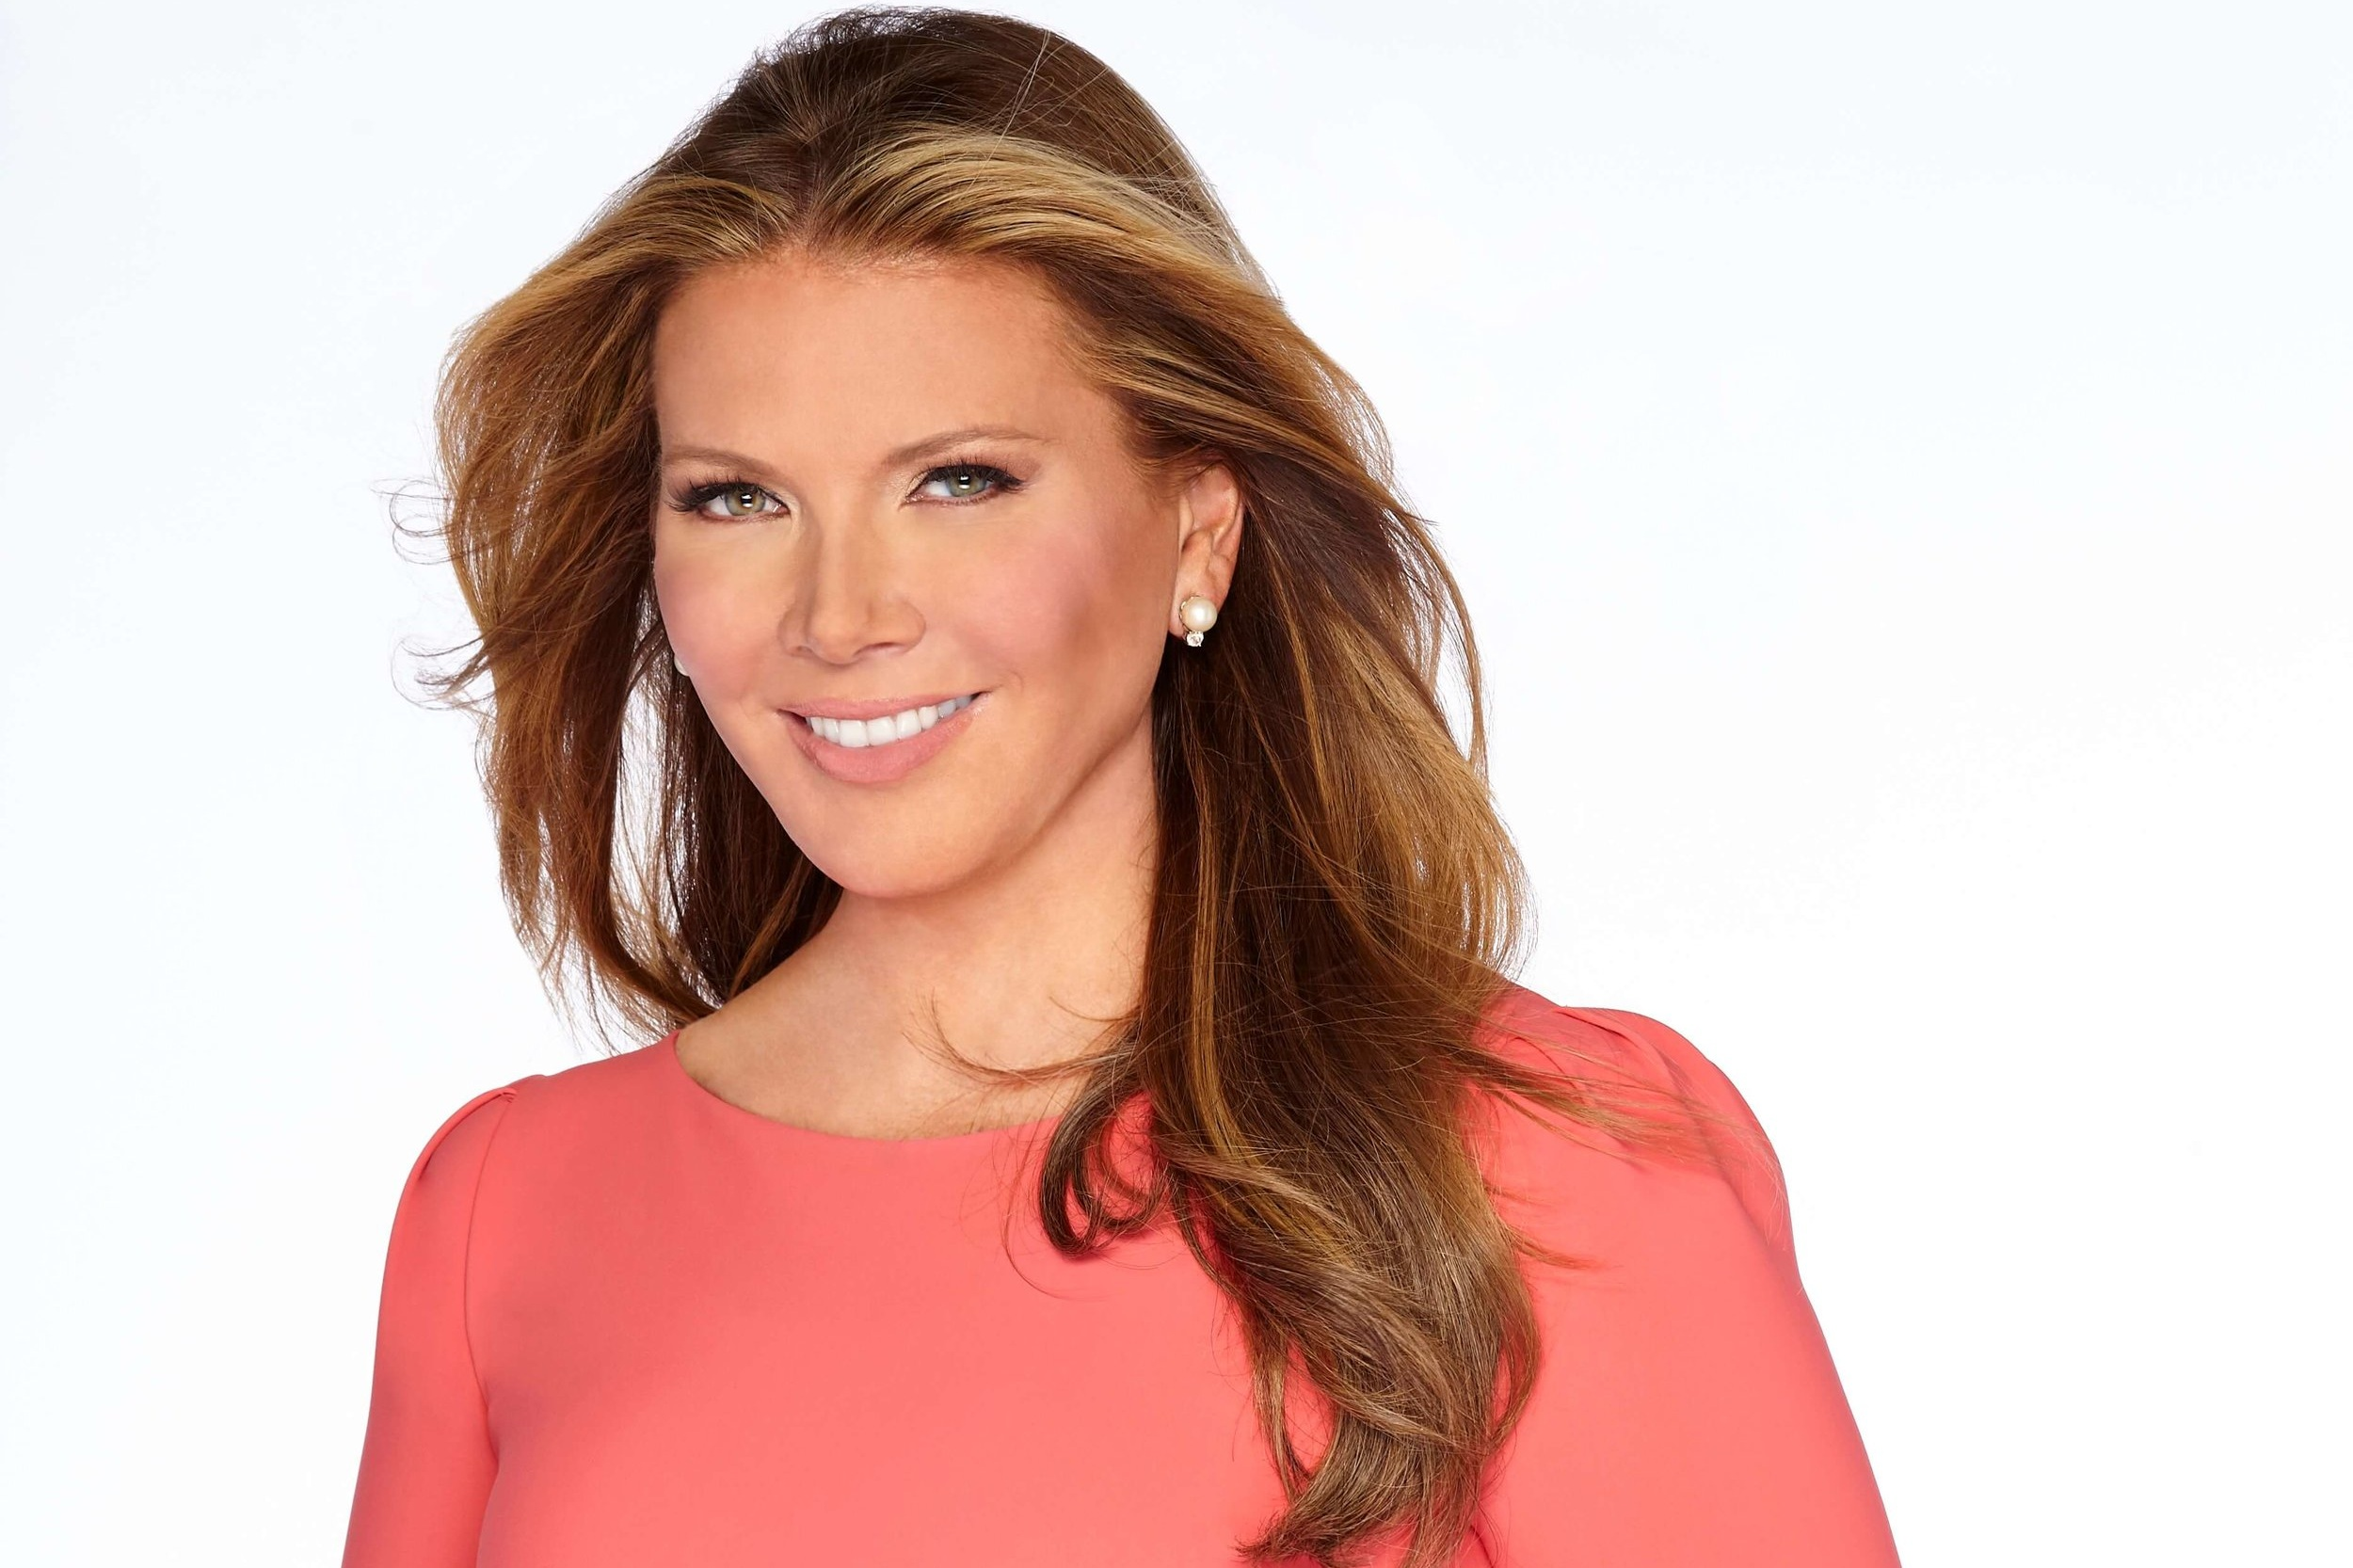 Trish Regan Tells Evie How She Got It All. - The Emmy-nominated host of Trish Regan Primetime sat down with Brittany Martinez of Evie. She shared her experience and insight on how she reached the top of her profession while maintaining a rich and love-filled personal life.Read more…